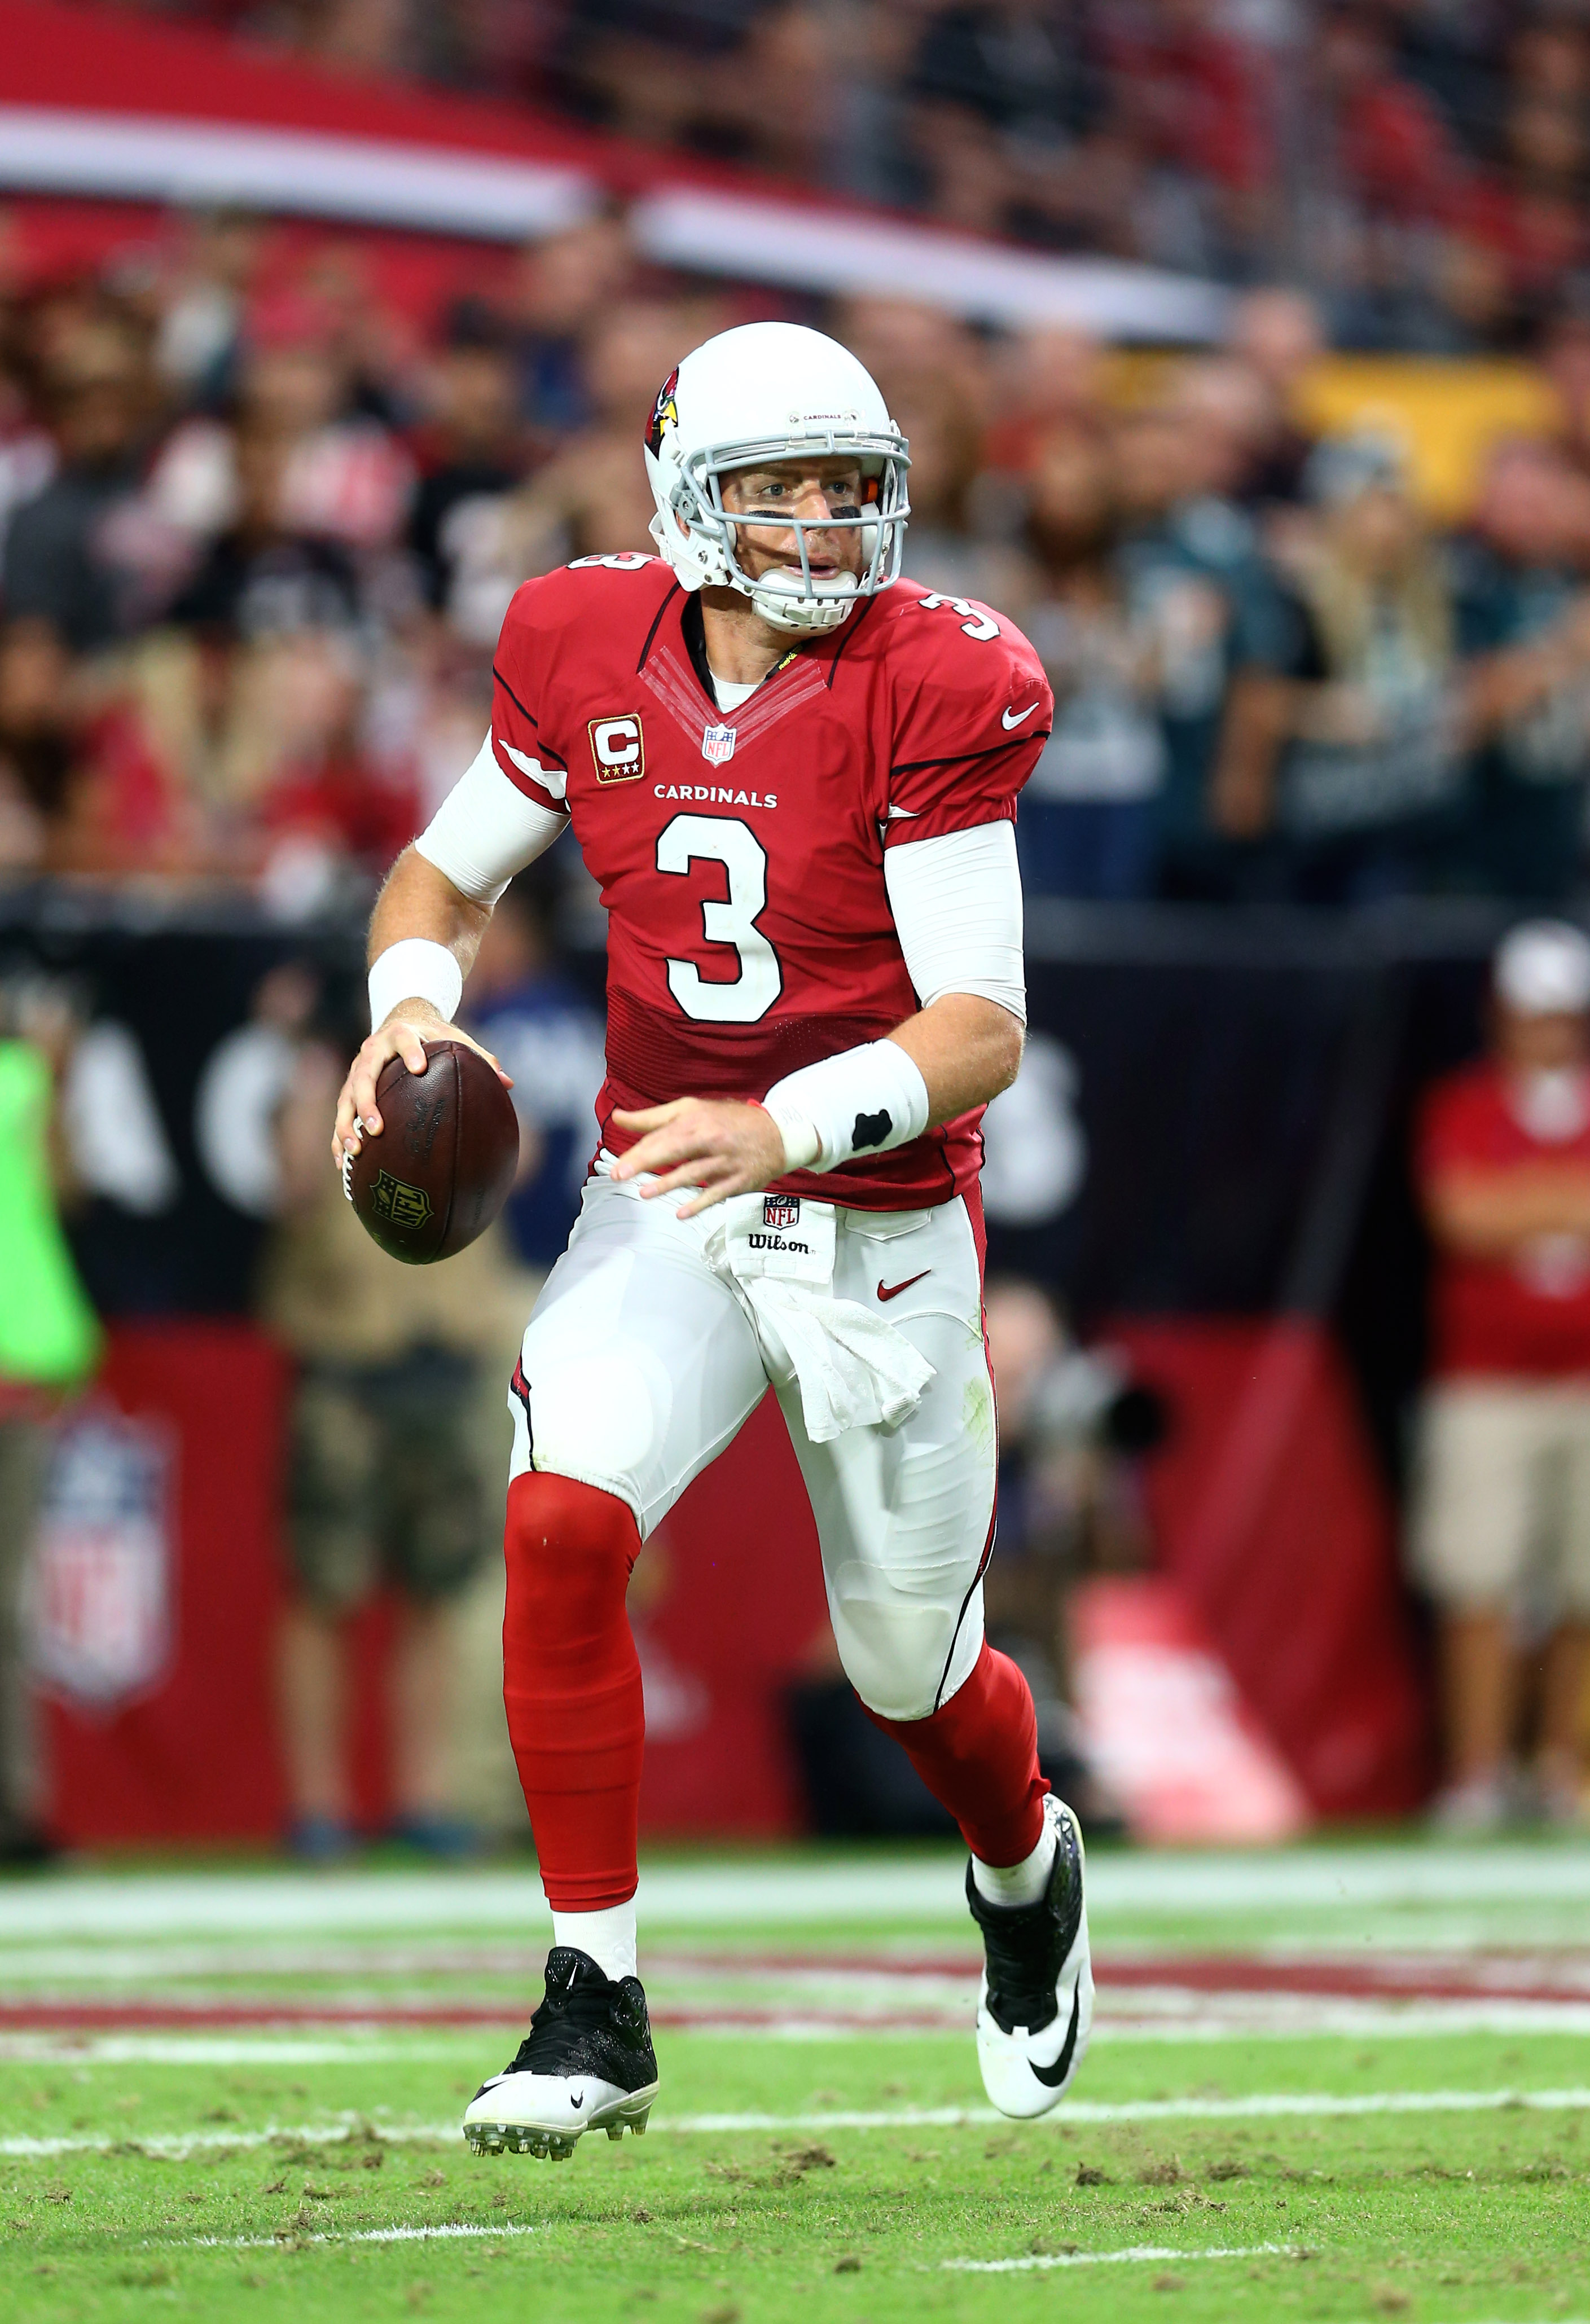 Carson Palmer - Pro Football Rumors